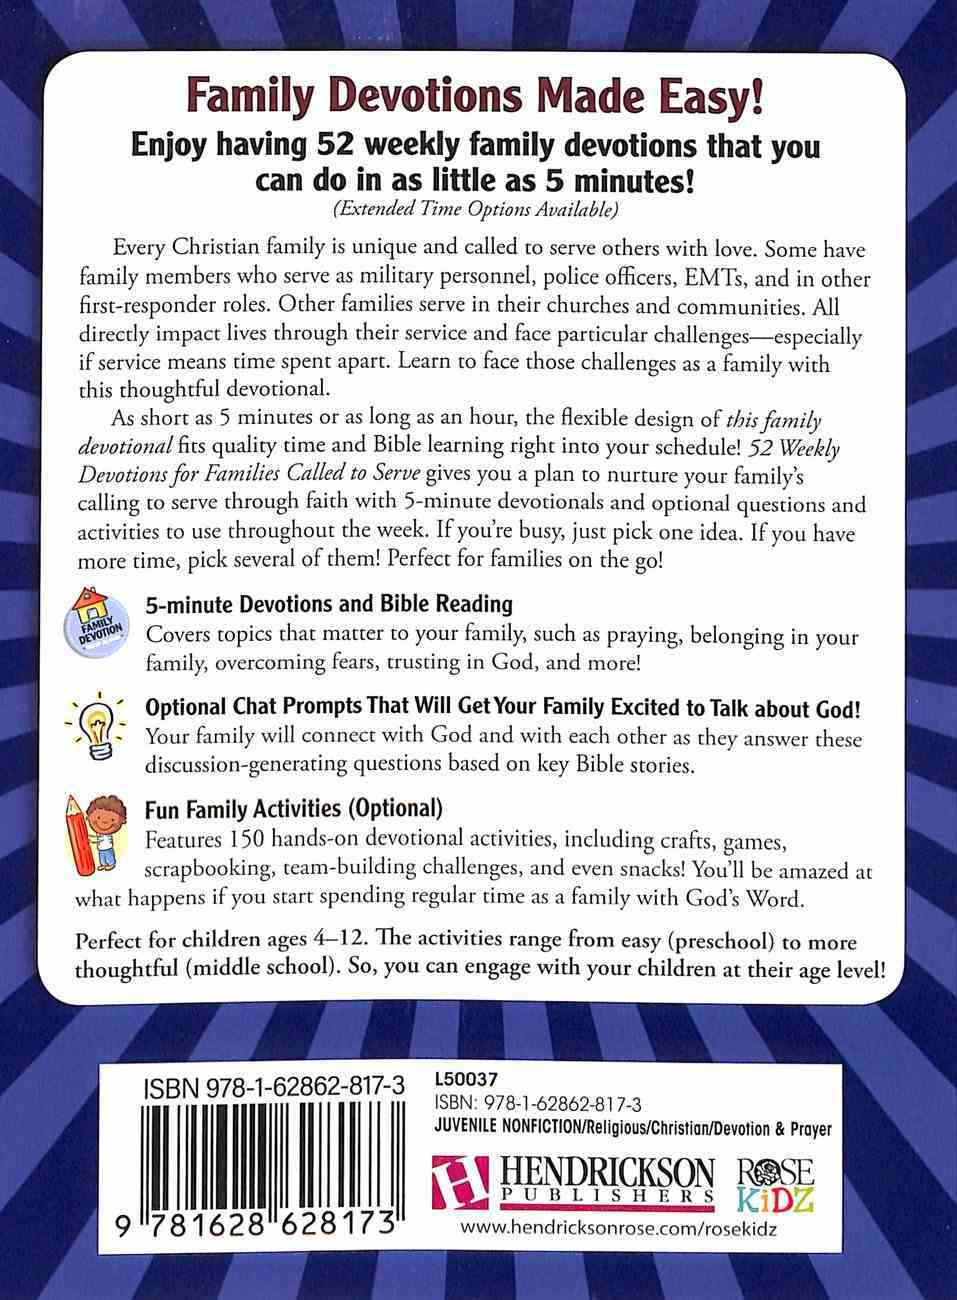 52 Weekly Devotions For Families Called to Serve Paperback